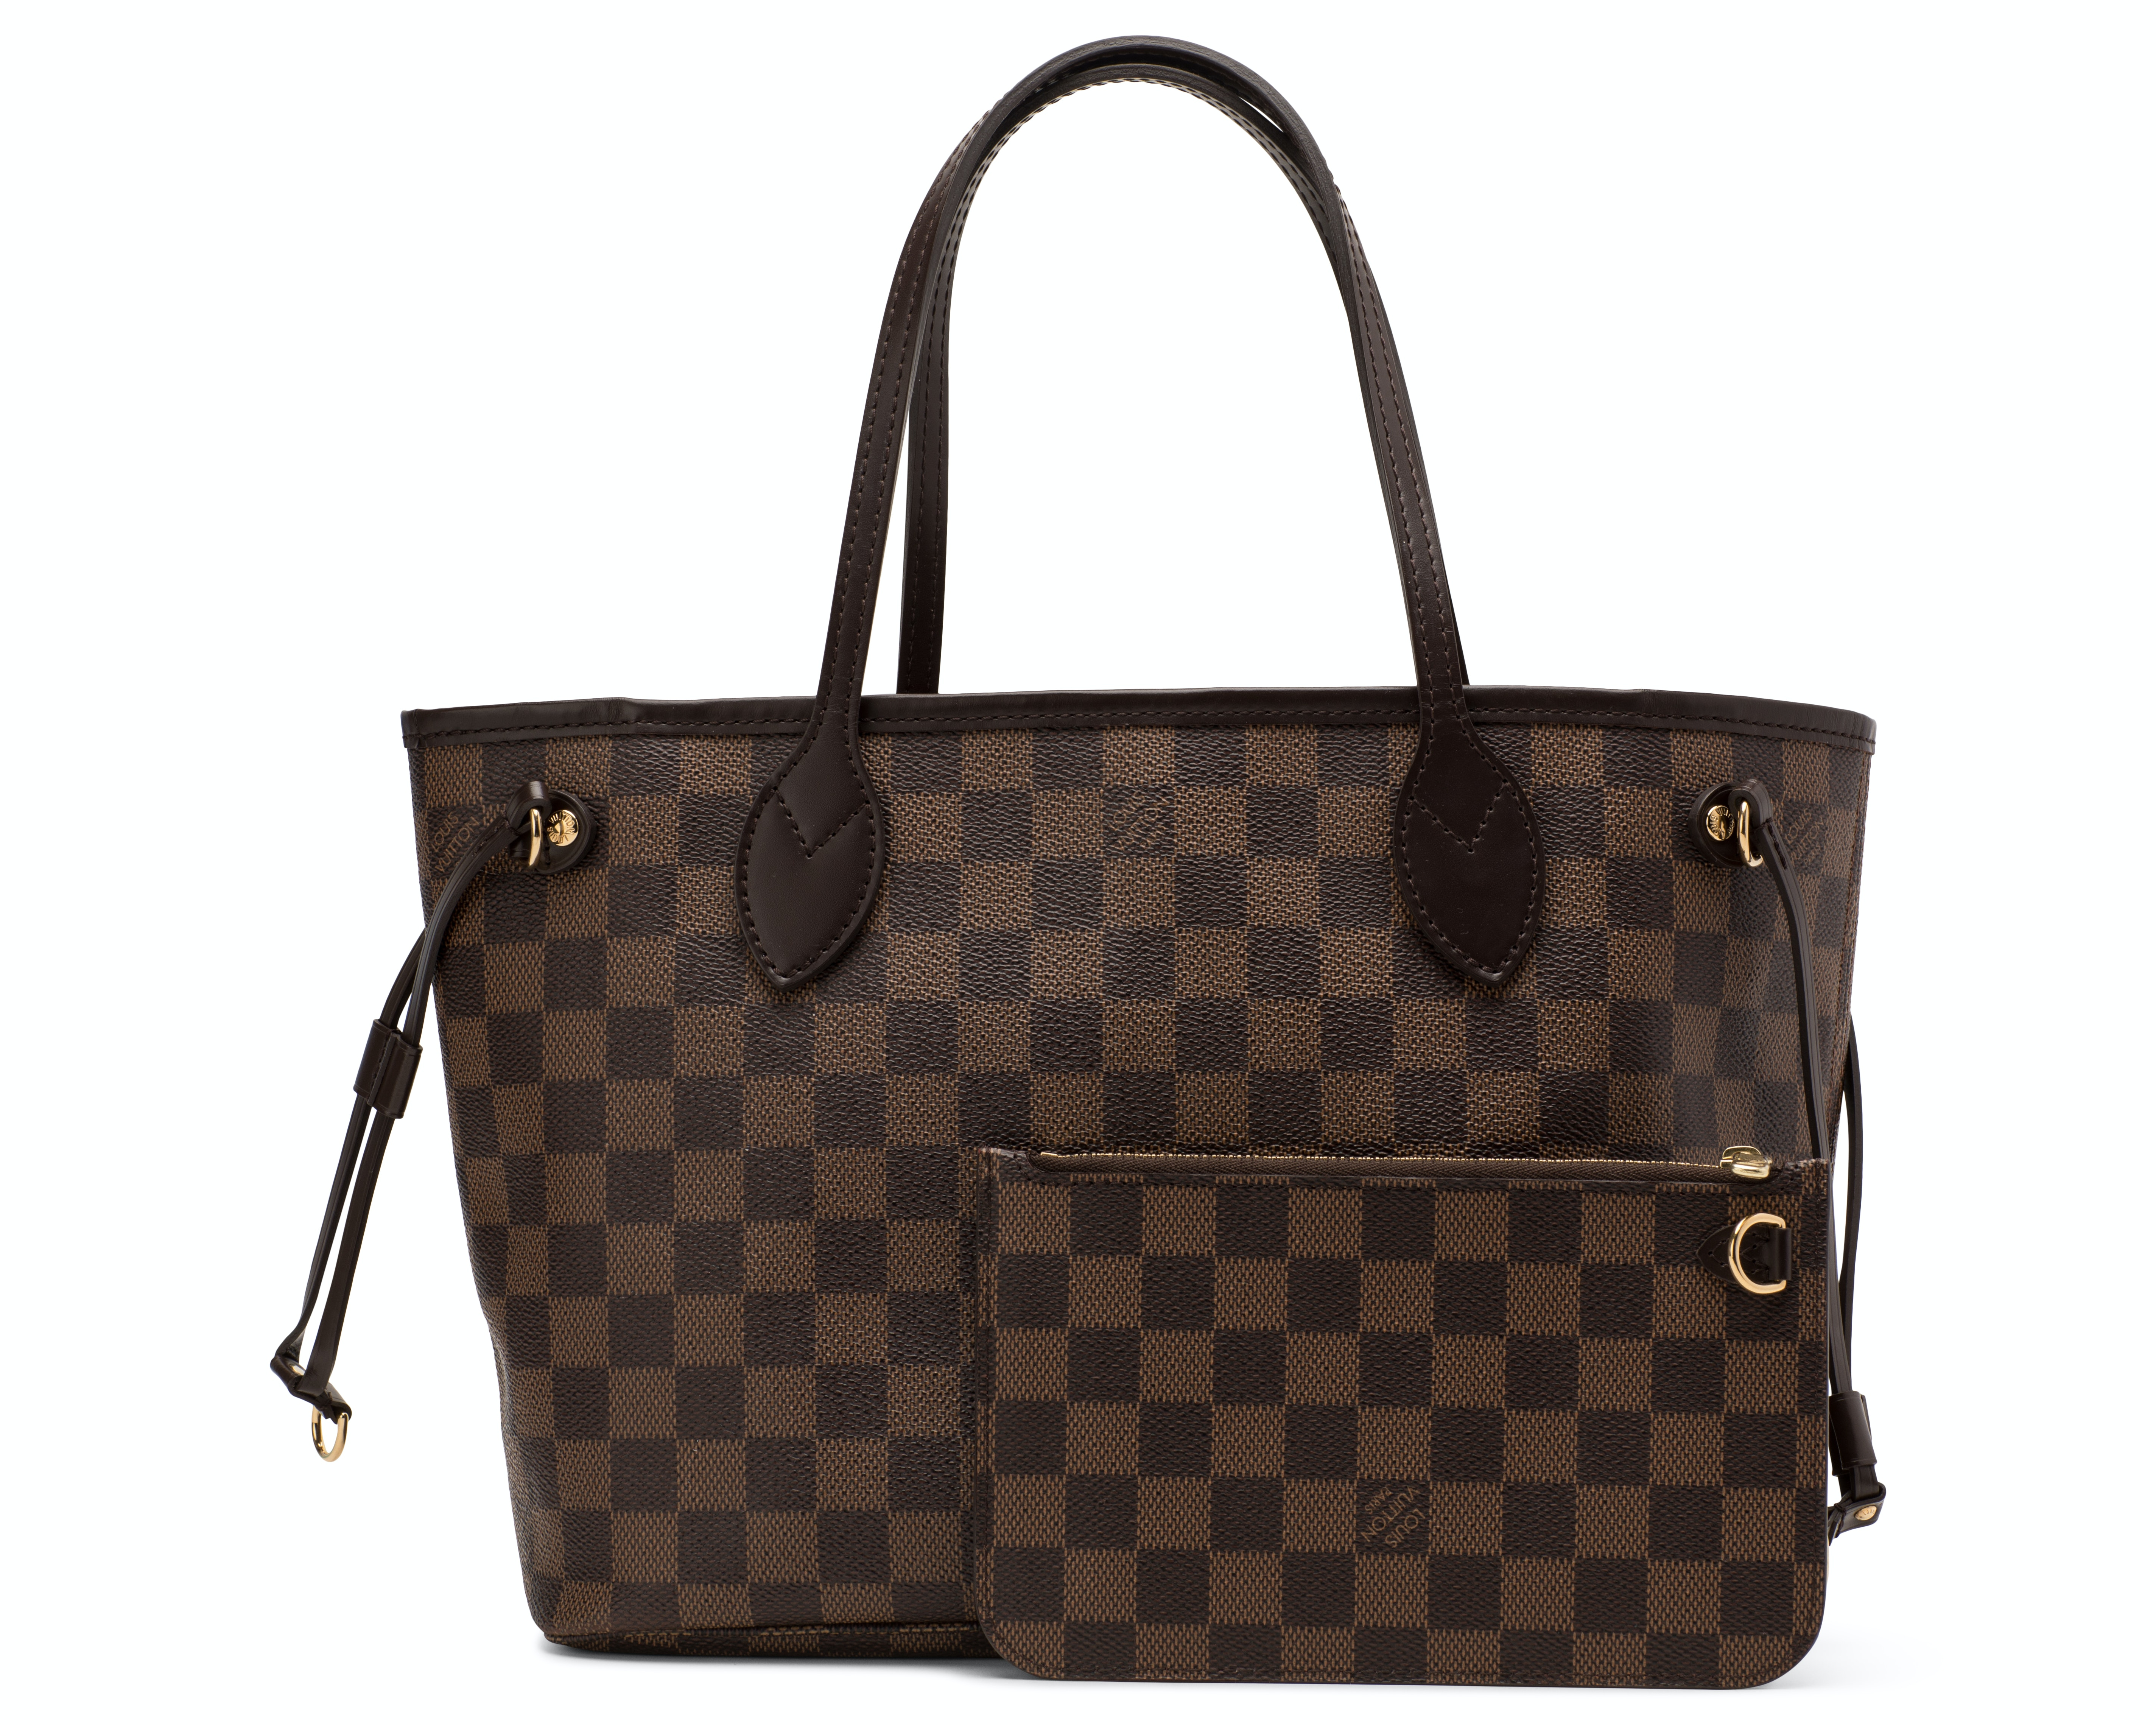 Louis Vuitton Neverfull Nm Damier Ebene PM (With Pouch) Brown